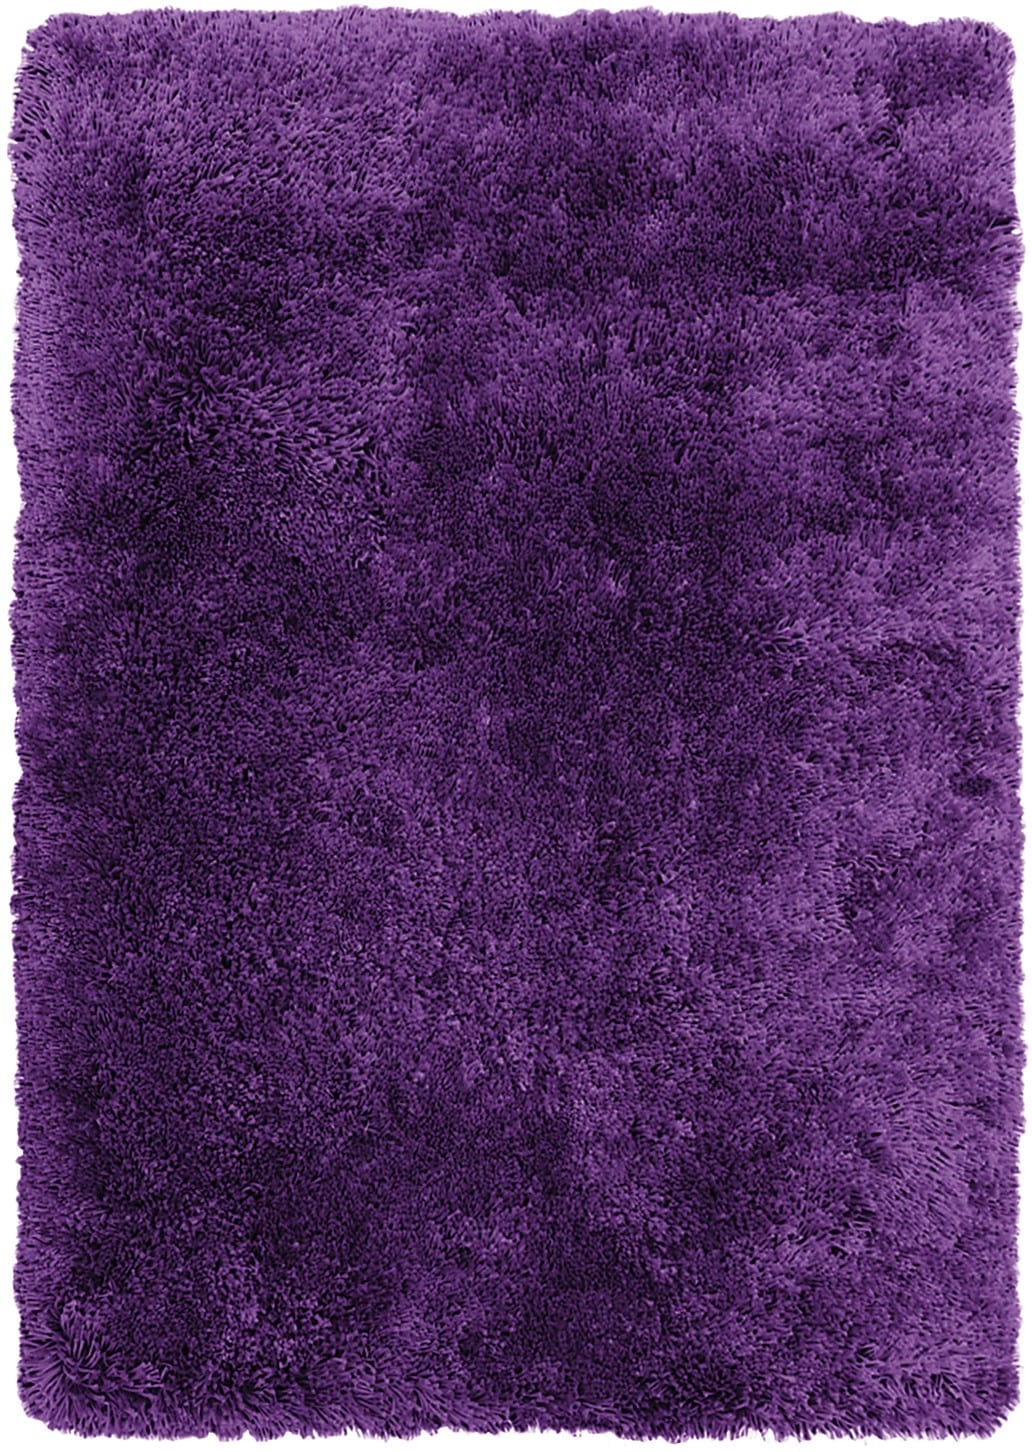 Purple Fashion Shag Area Rug – 4' x 5'